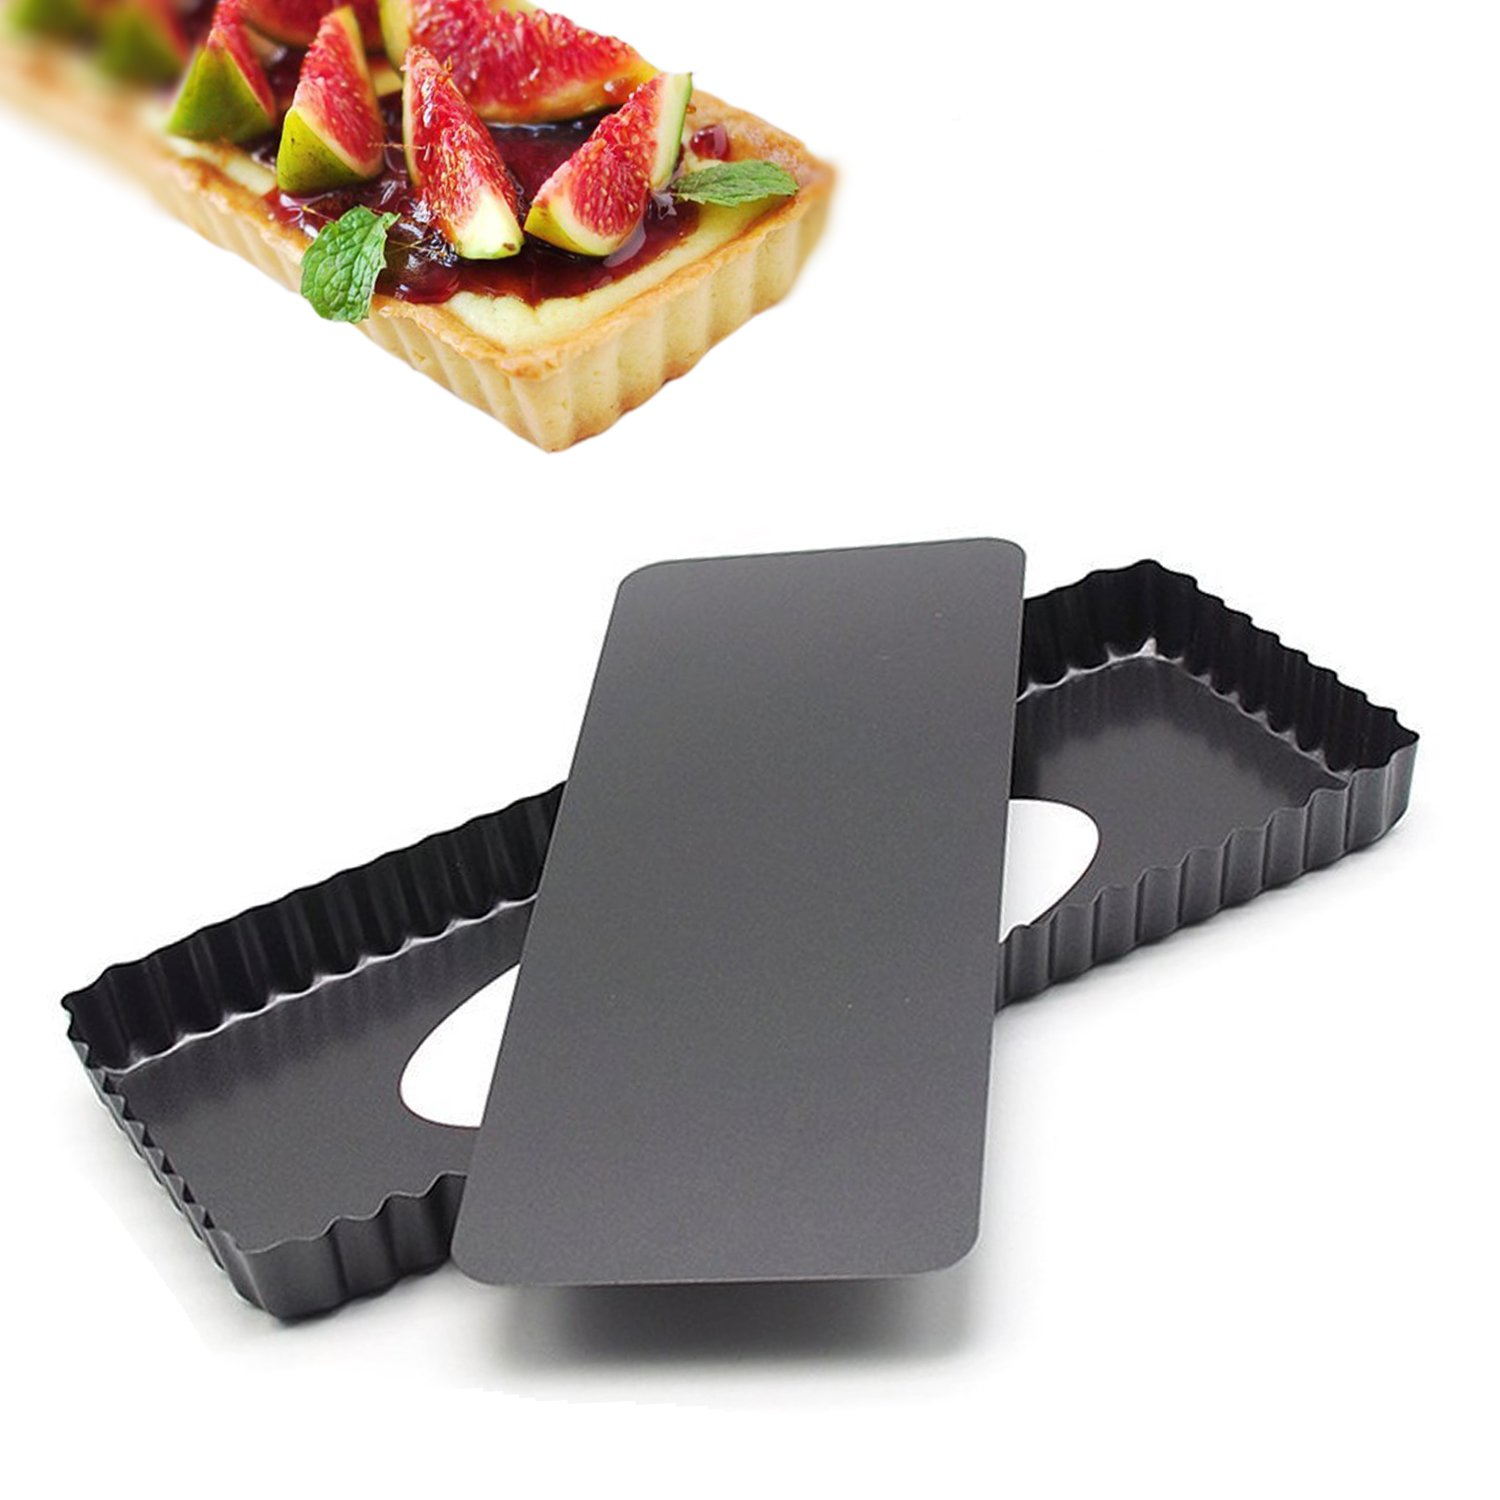 14.4 Inches Removable Loose Bottom Non-Stick Rectangle Tart Pan - 14.4'' x 5.9'' x 1.2'' by Vanly